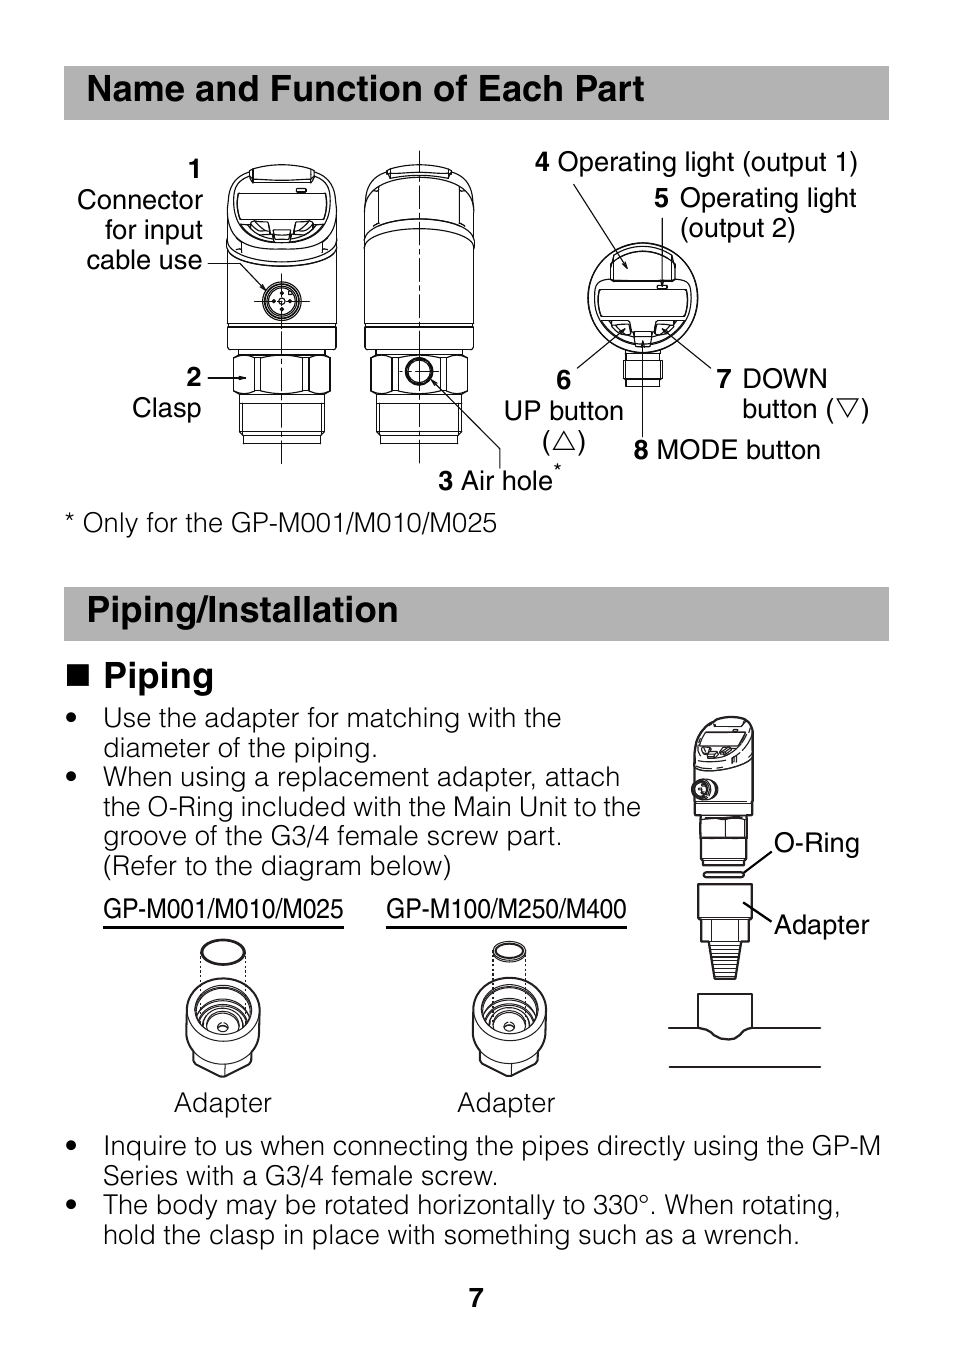 hight resolution of name and function of each part piping installation piping keyence gp m series user manual page 7 28